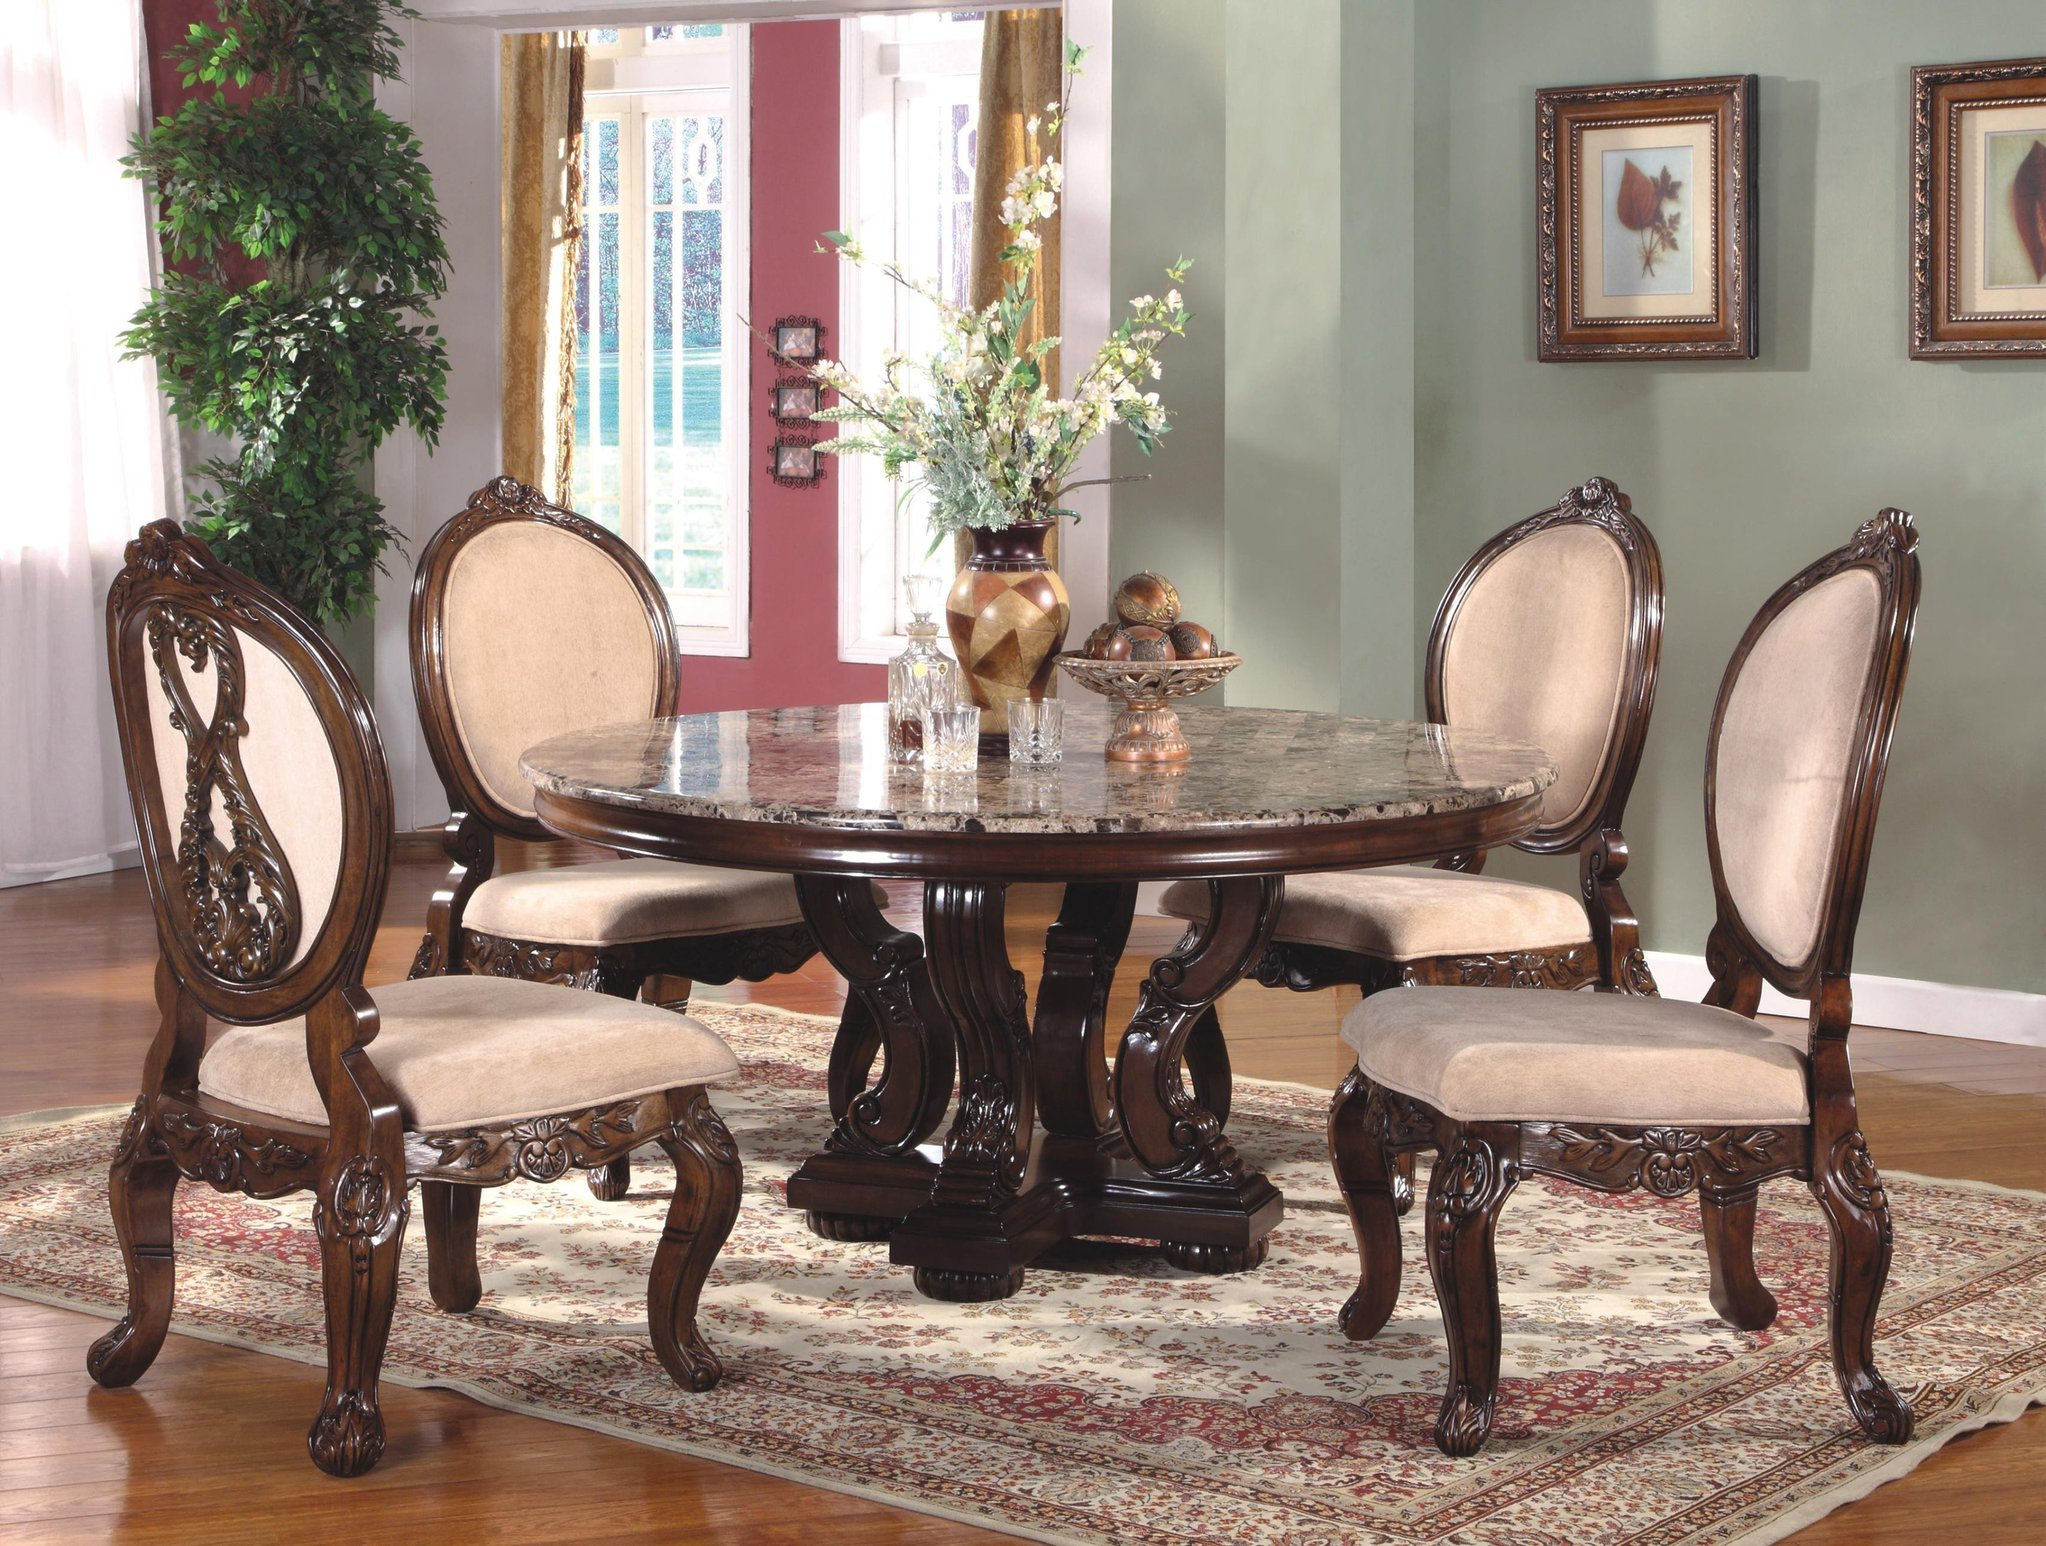 Enjoy A Lavish Dinner With Round Dining Room Sets